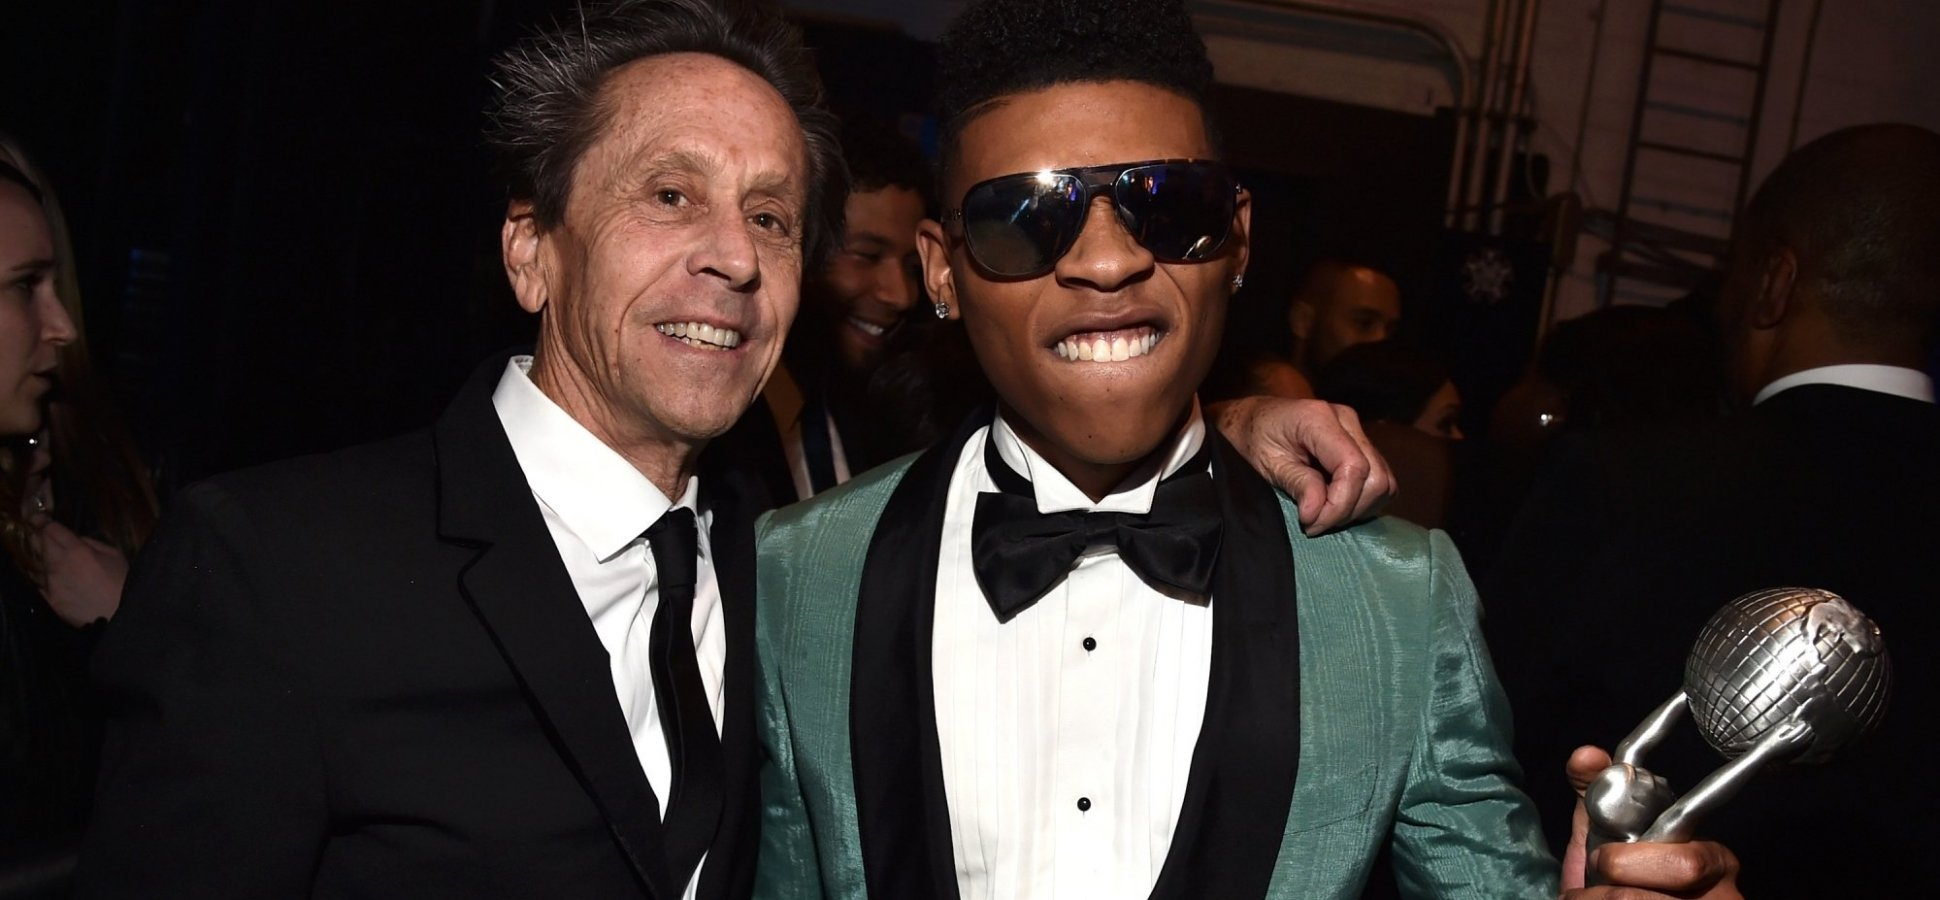 7 Words of Wisdom That Helped Brian Grazer Rise From Mail Clerk to Hollywood Super Producer